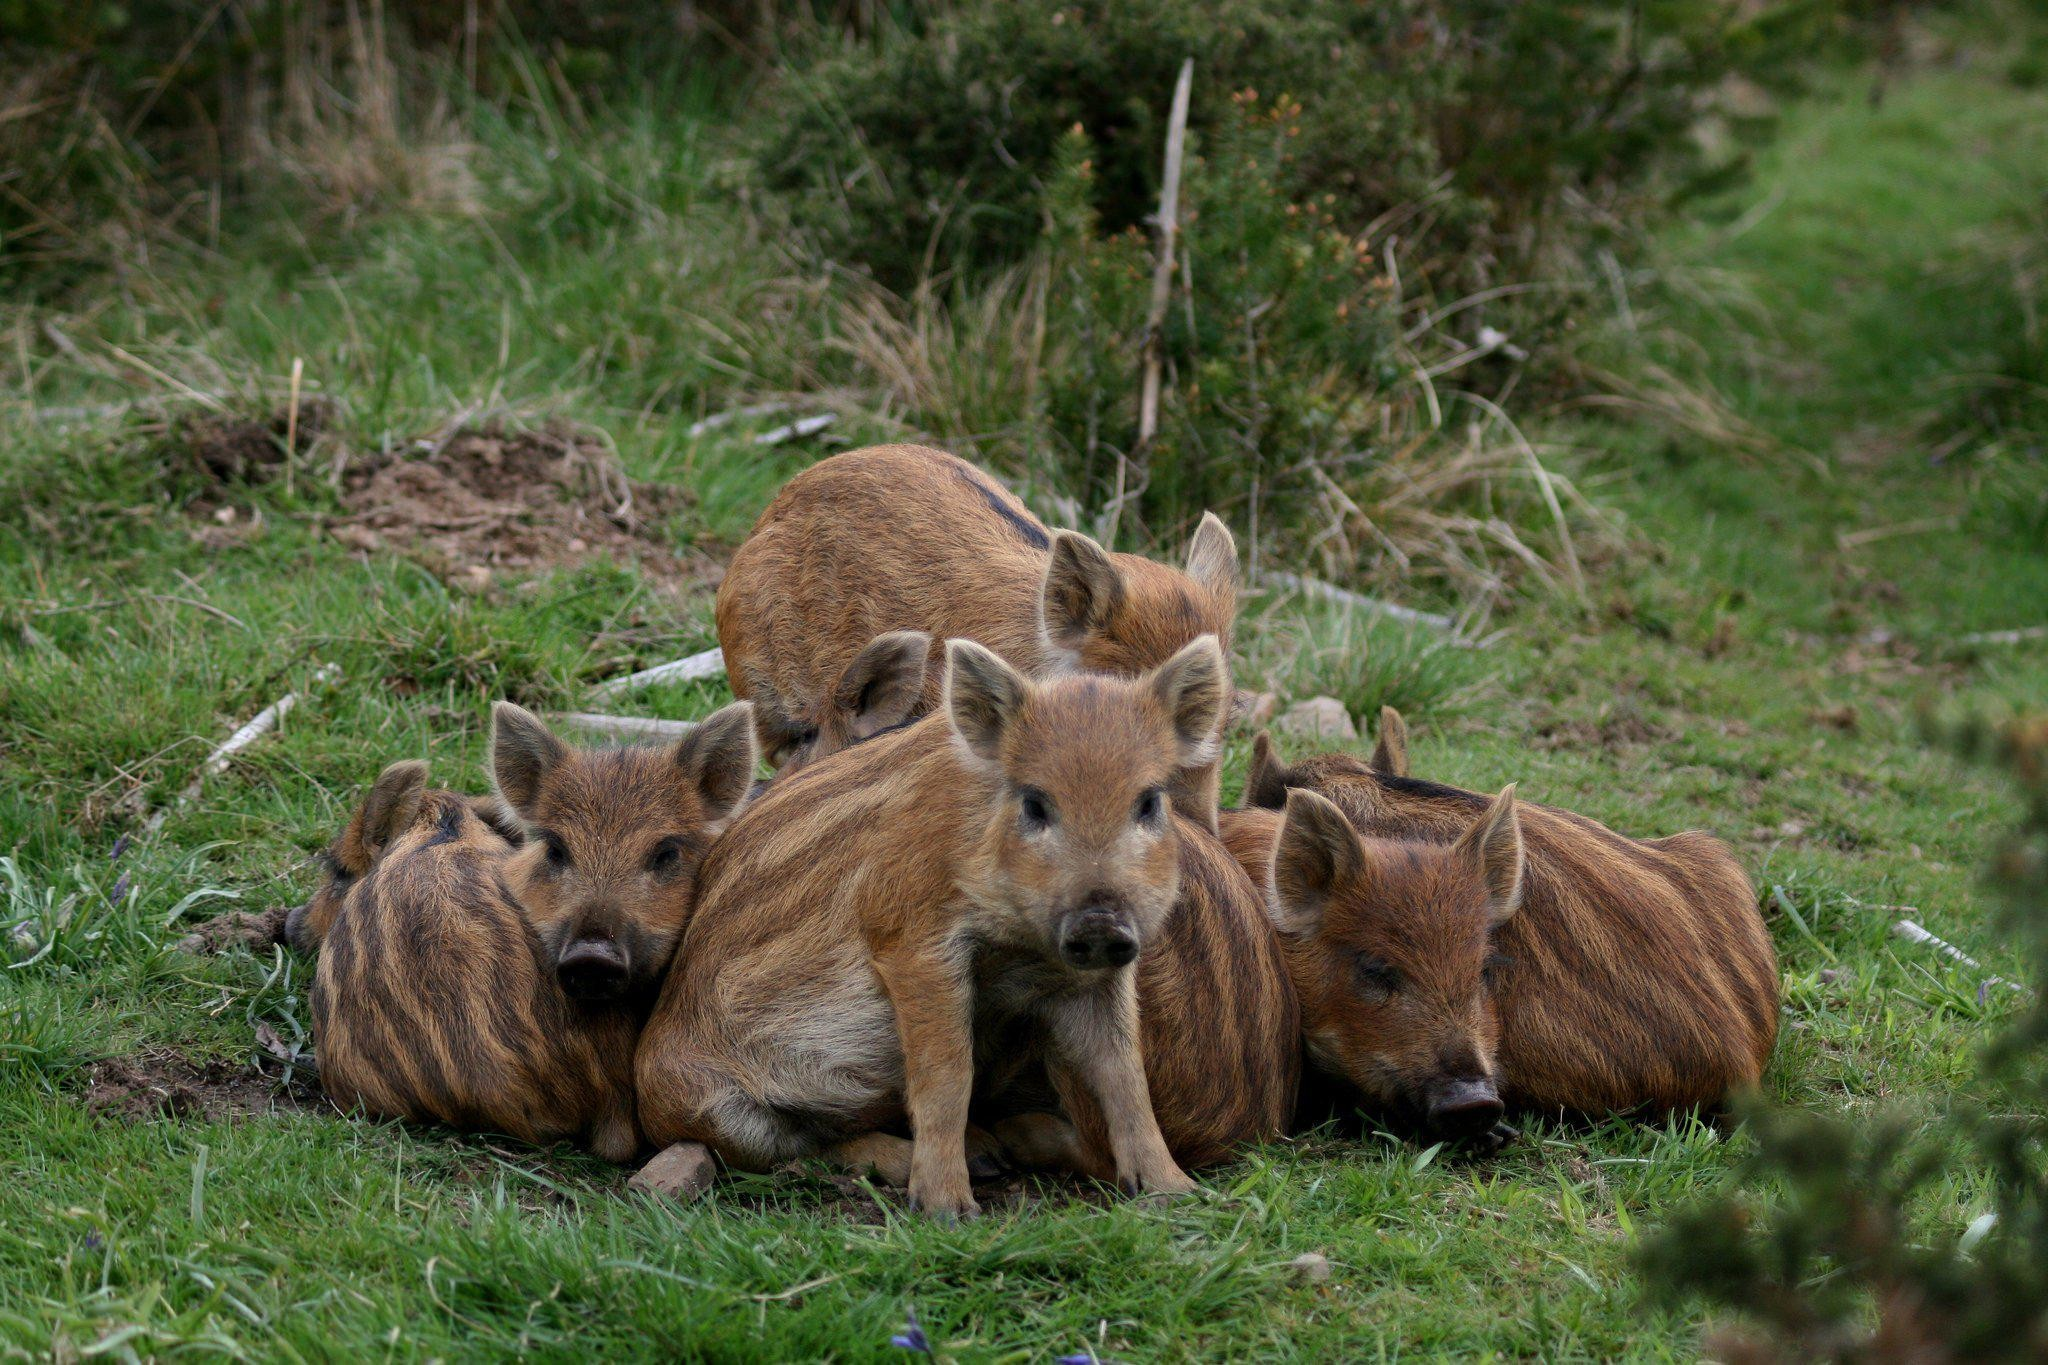 Res: 2048x1365, HD Pigs Wild Boars Baby wide Mobile Wallpaper